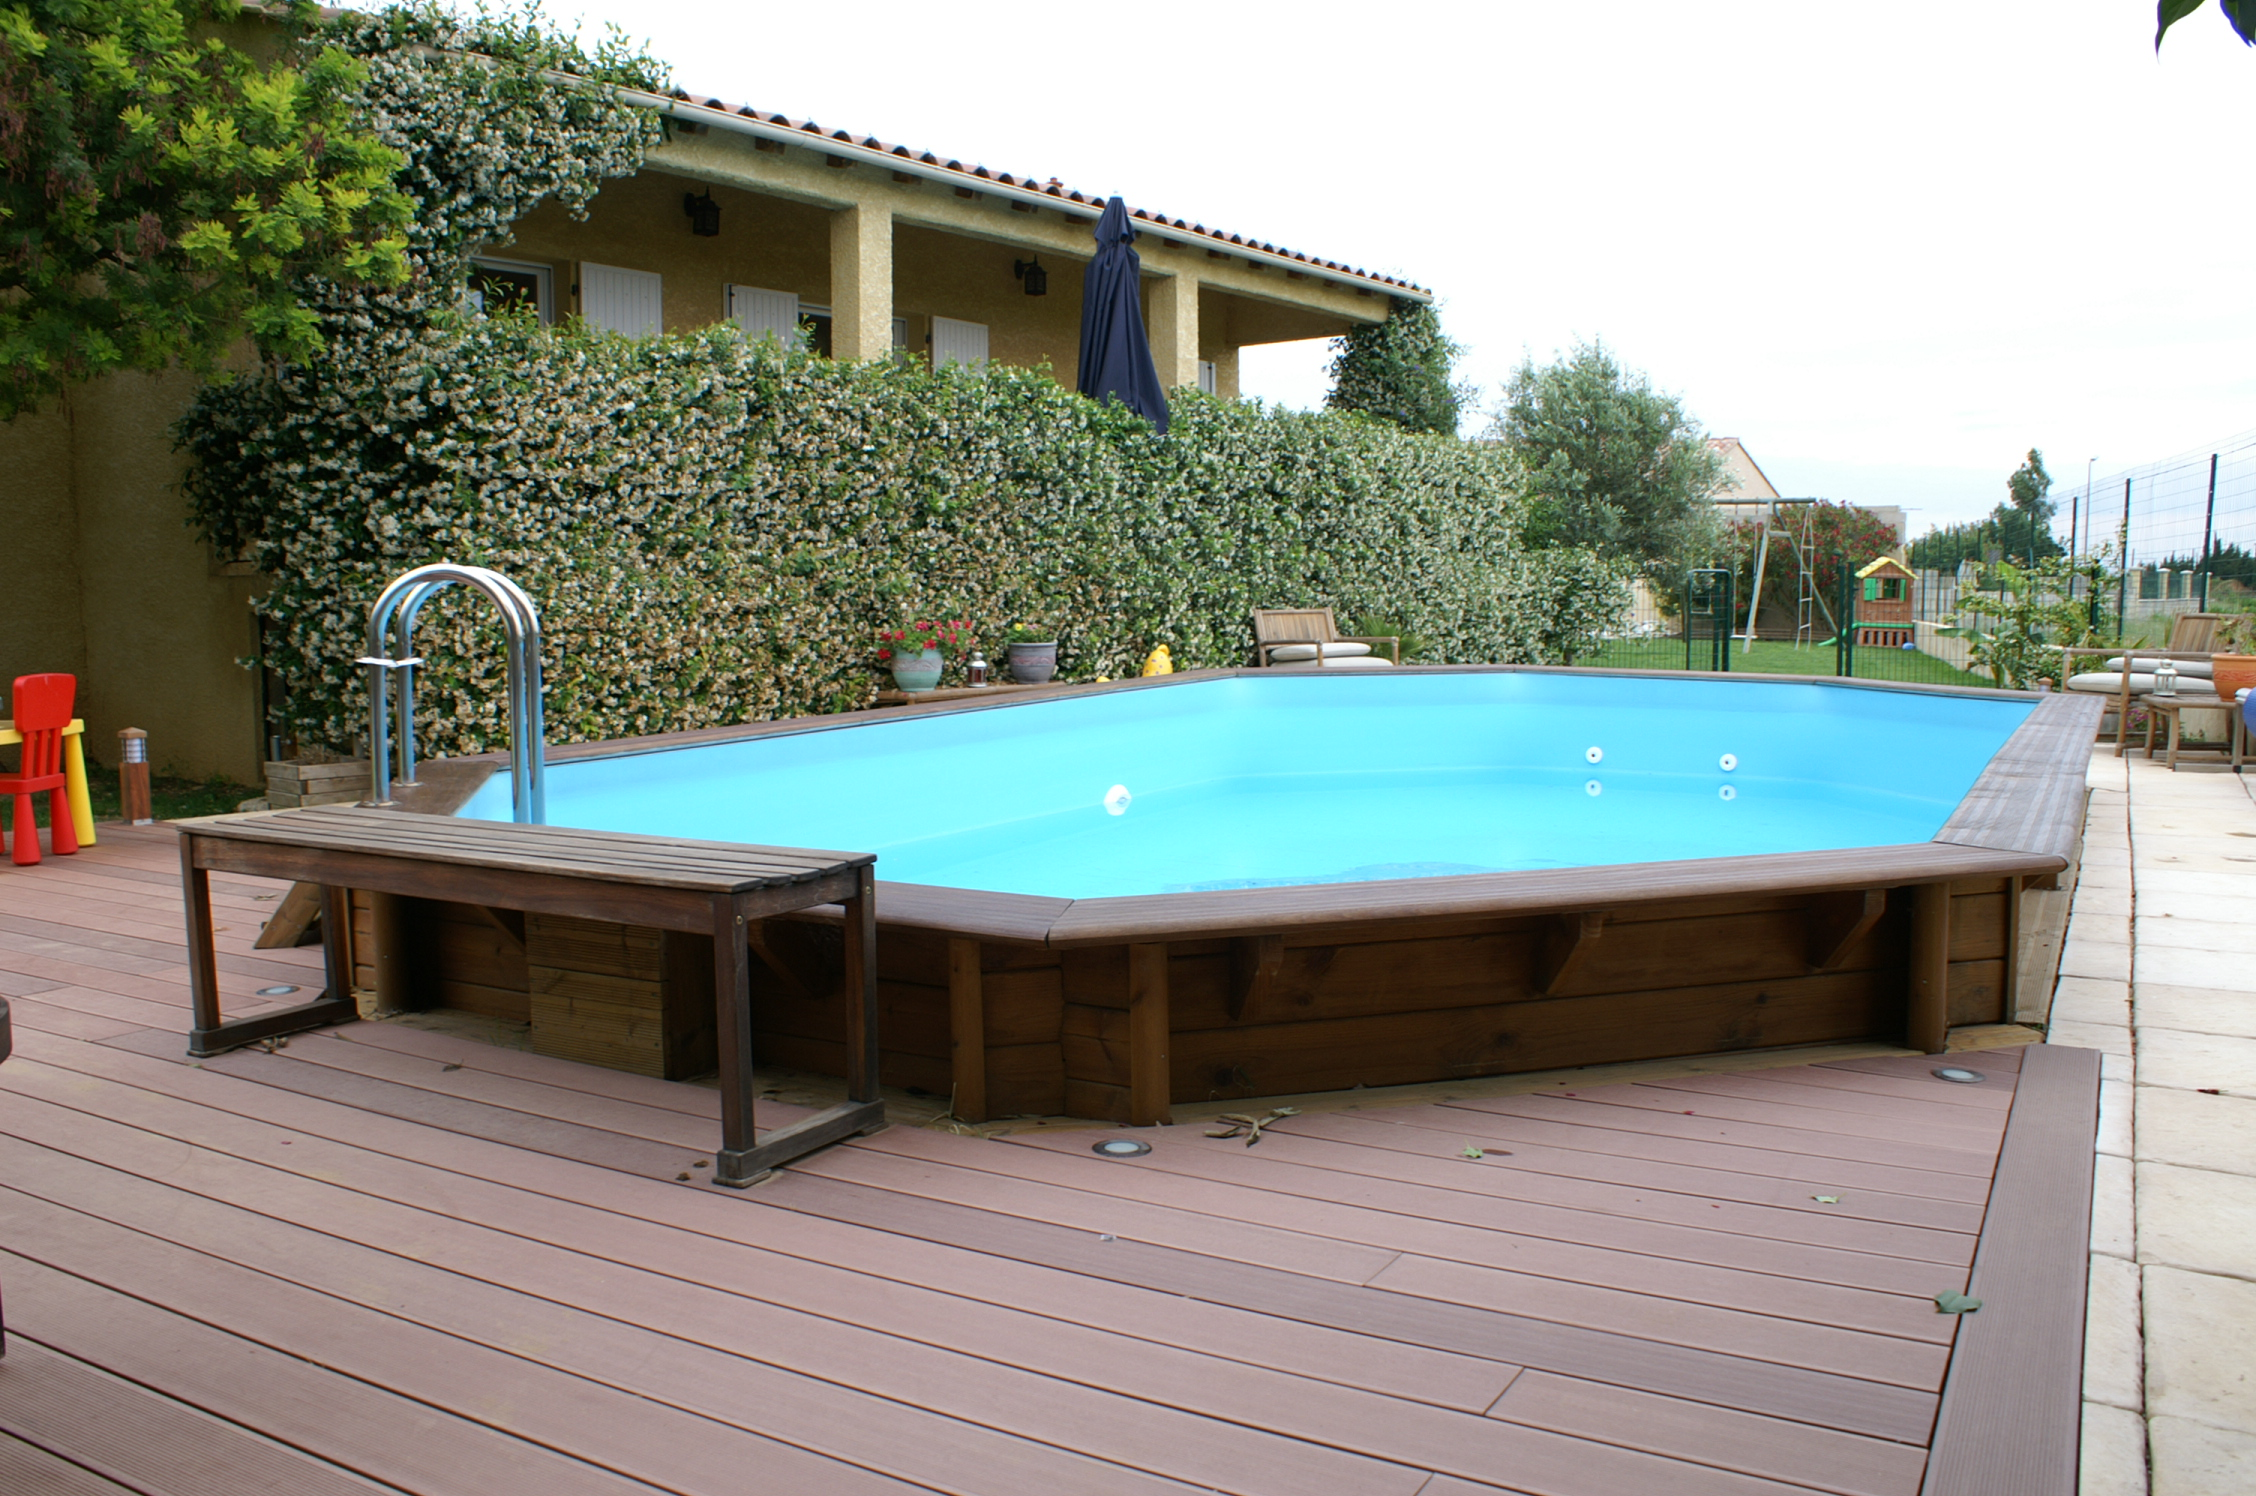 Construction piscines nimes gepad piscines et spa 30000 for Piscine hors sol qui explose